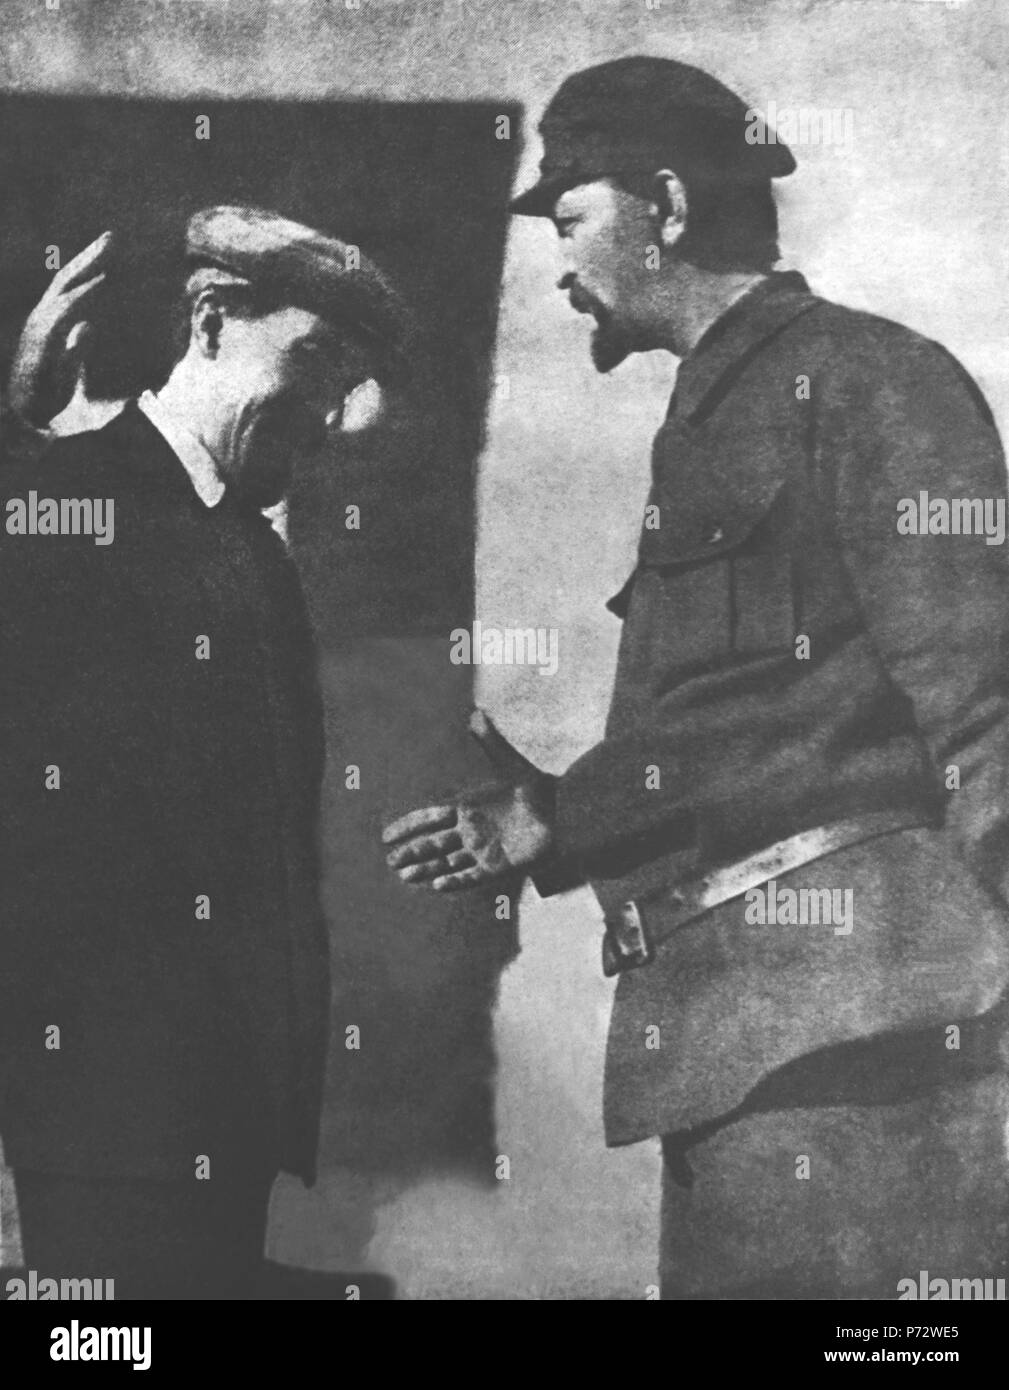 English: Alexei Rykov, Chairman of the Council of People's Commissars (Prime Minister) greets Felix Dzerzhinsky, Director of the OGPU. Context: From the early days of USSR, the State security agency (first called Cheka, then GPU/OGPU) became the important factor in conducting the government policies specifically directed to extinguish the resistance of class enemies/enemies of the people. Started as a temporary agency, GPU (later called NKVD and KGB) became monstrous organization operating the network of labor camps (GULAG), conducting prosecutions of entire ethnic and social groups and mass r - Stock Image